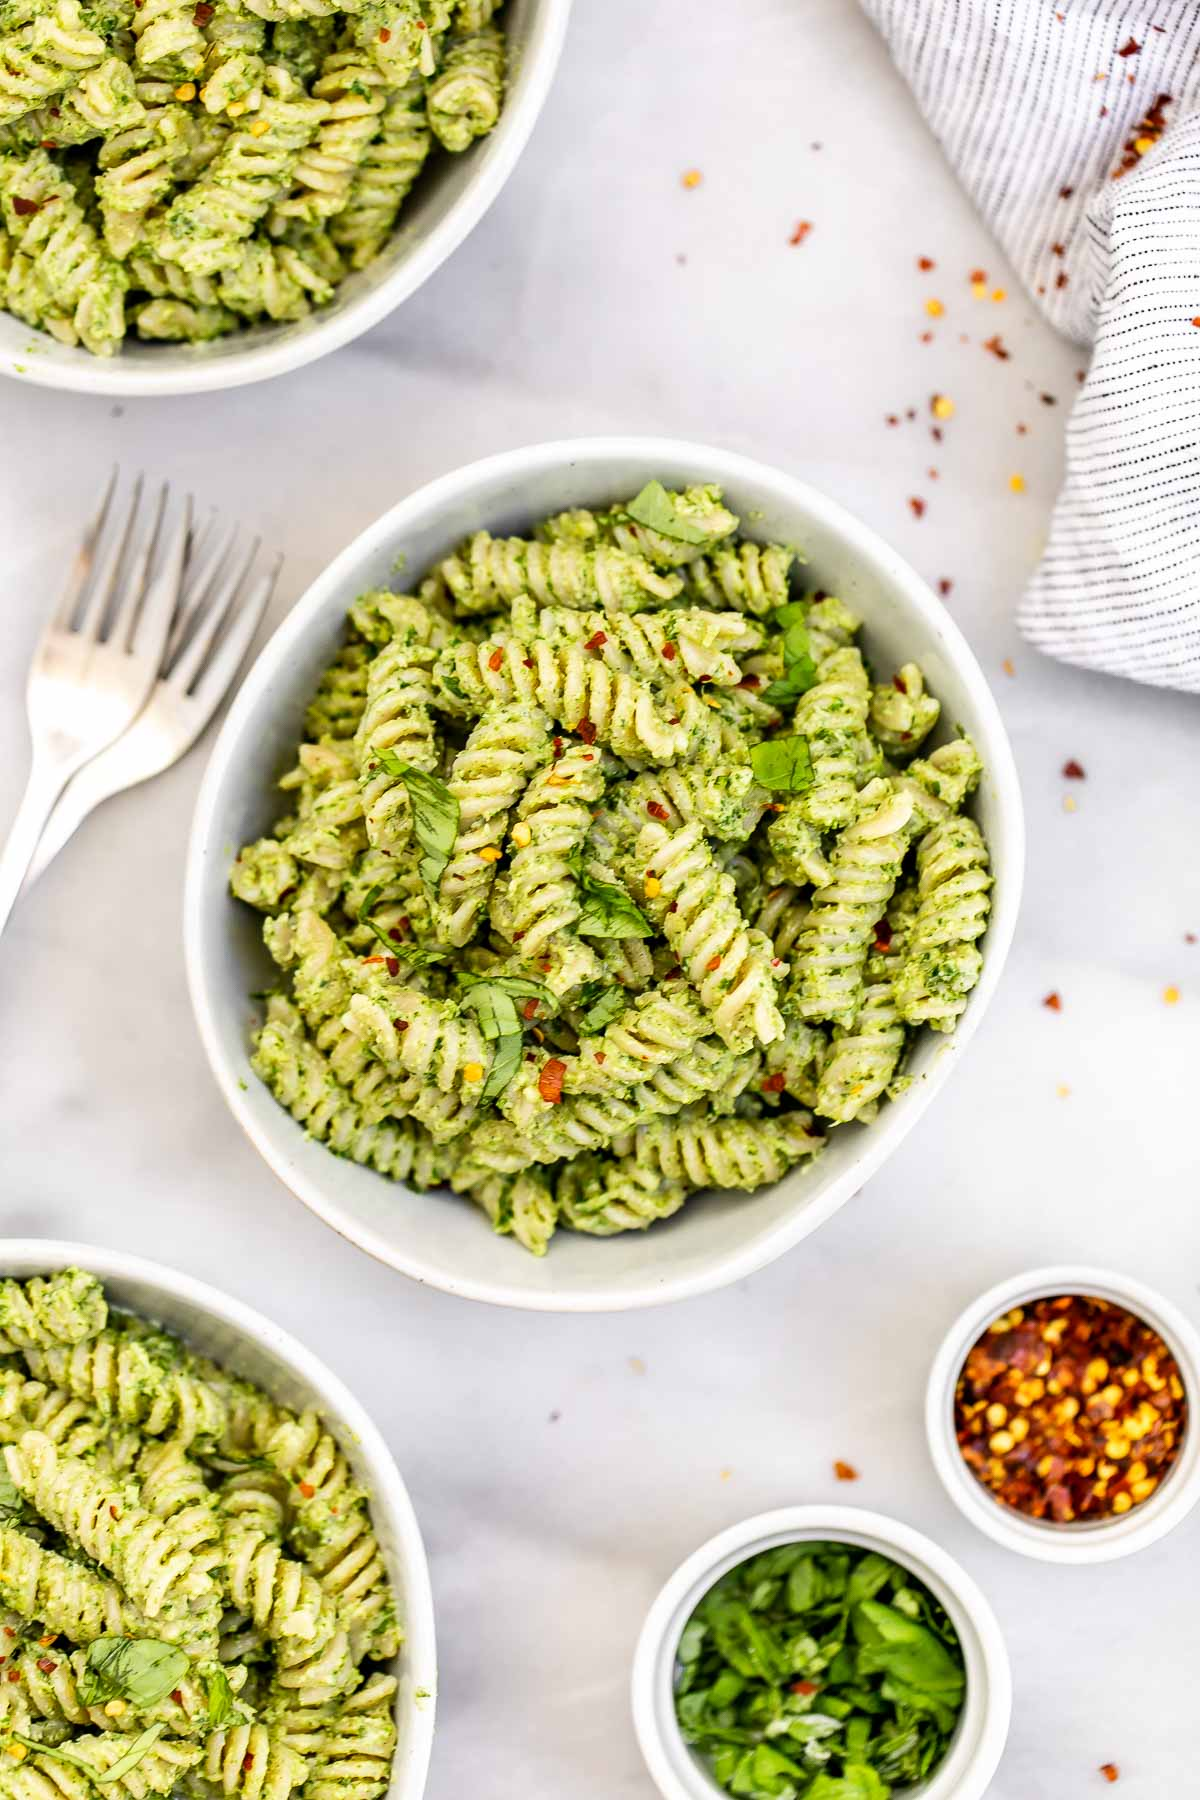 Vegan pesto pasta with fresh basil in a white bowl.